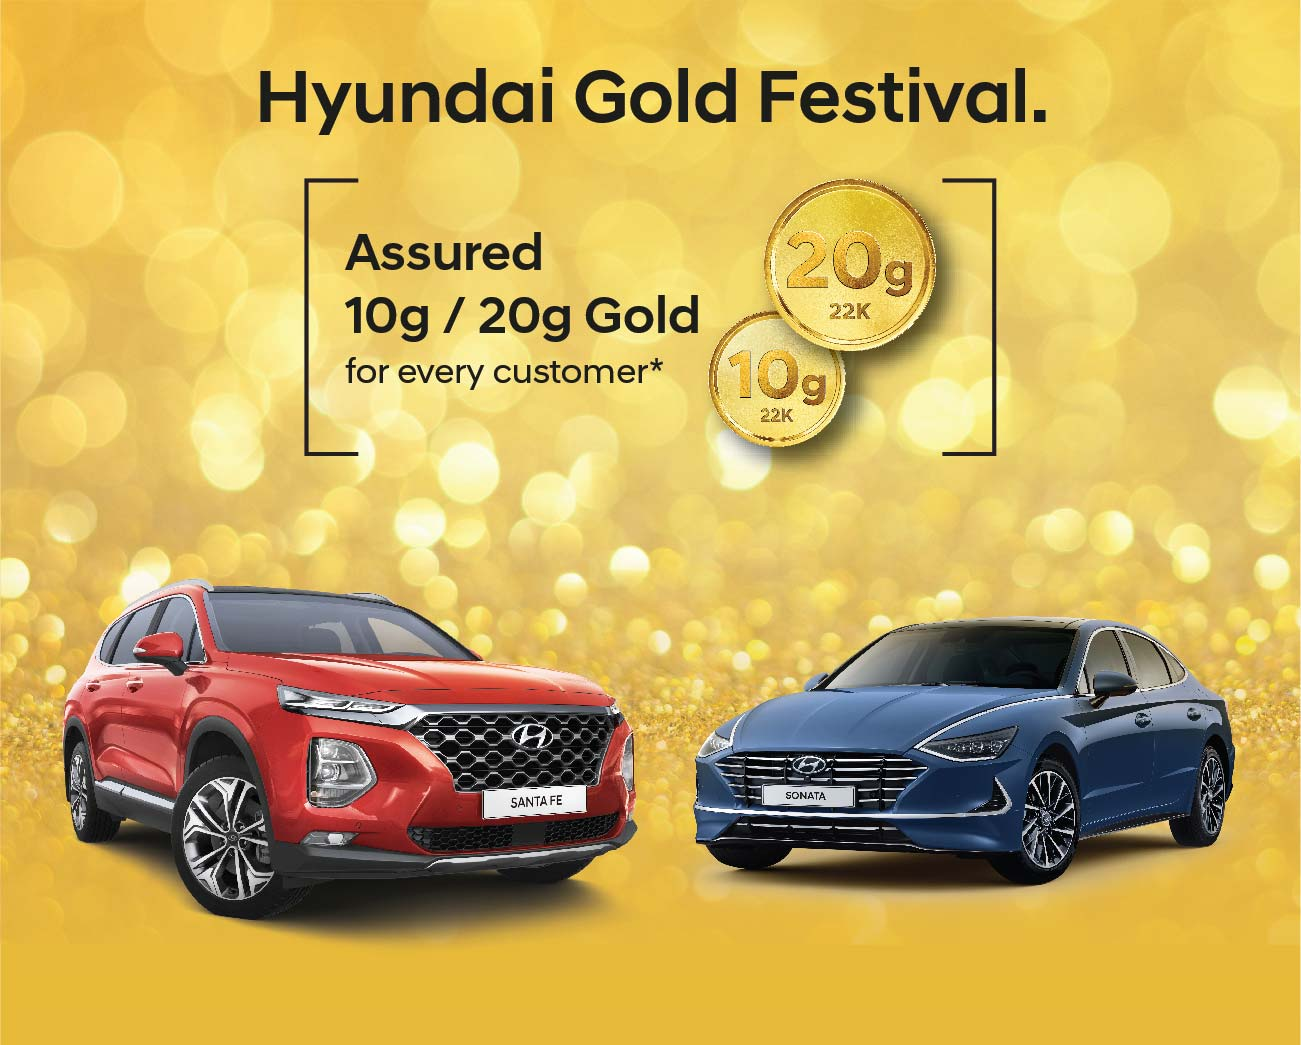 Hyundai offers 6 new models and assured Gold with every purchase!